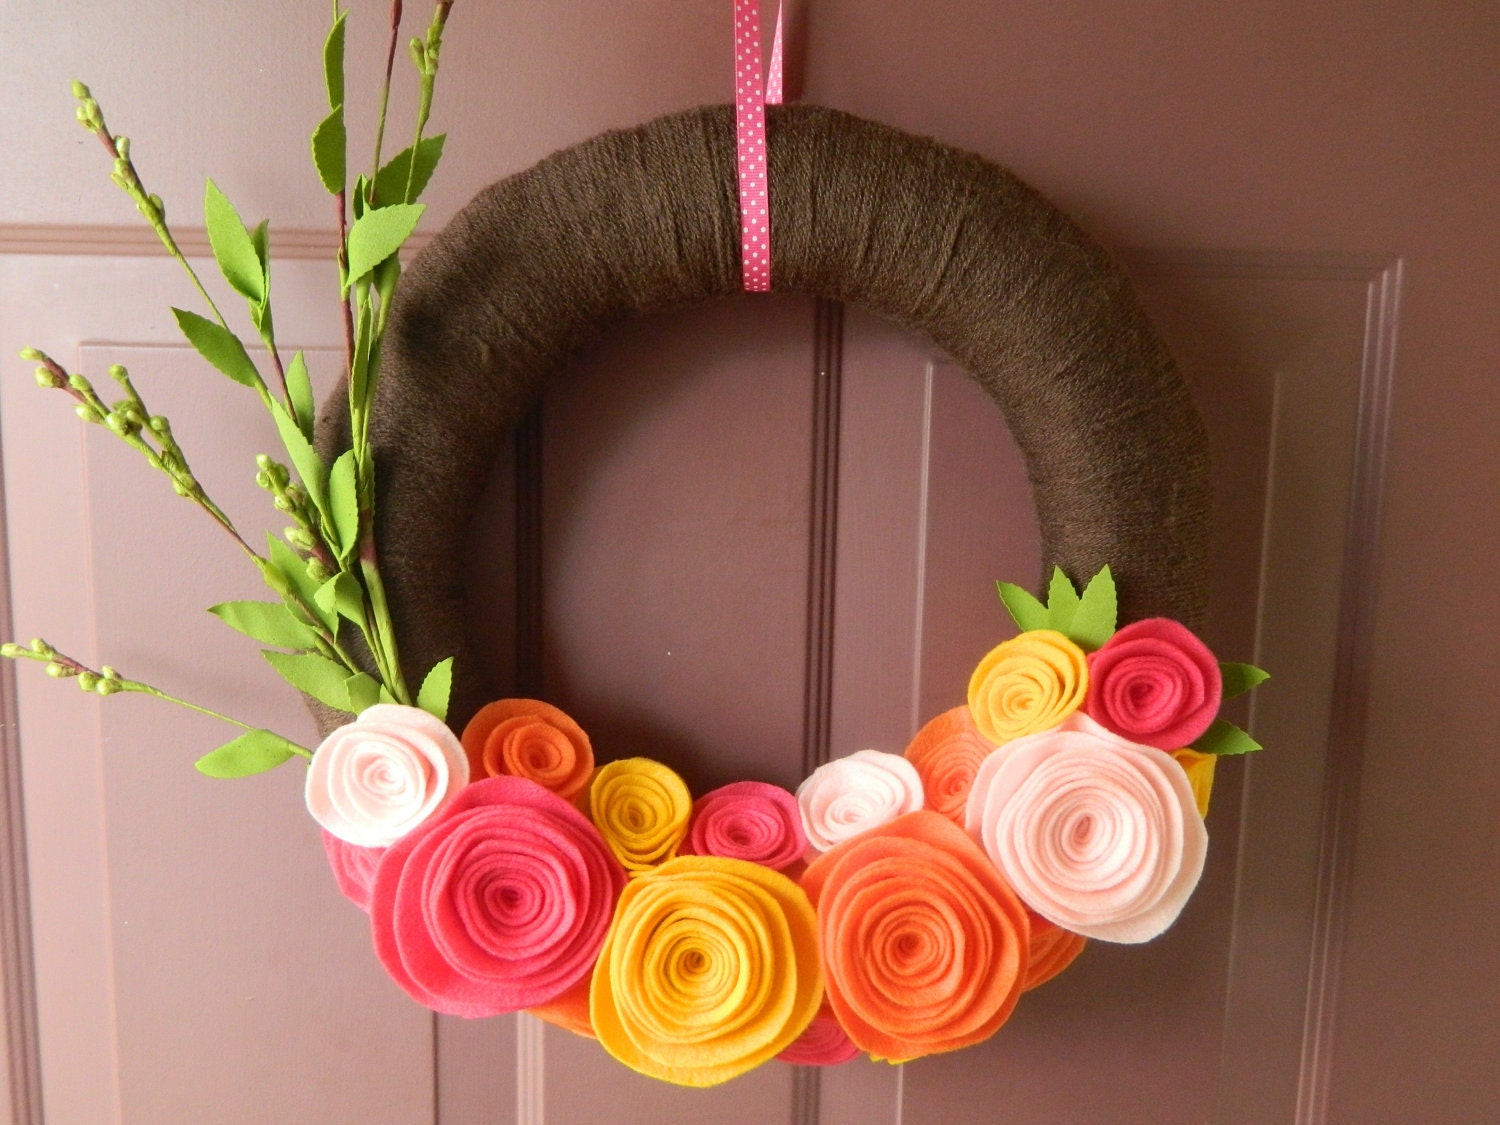 Handmade decorative item for Handmade things